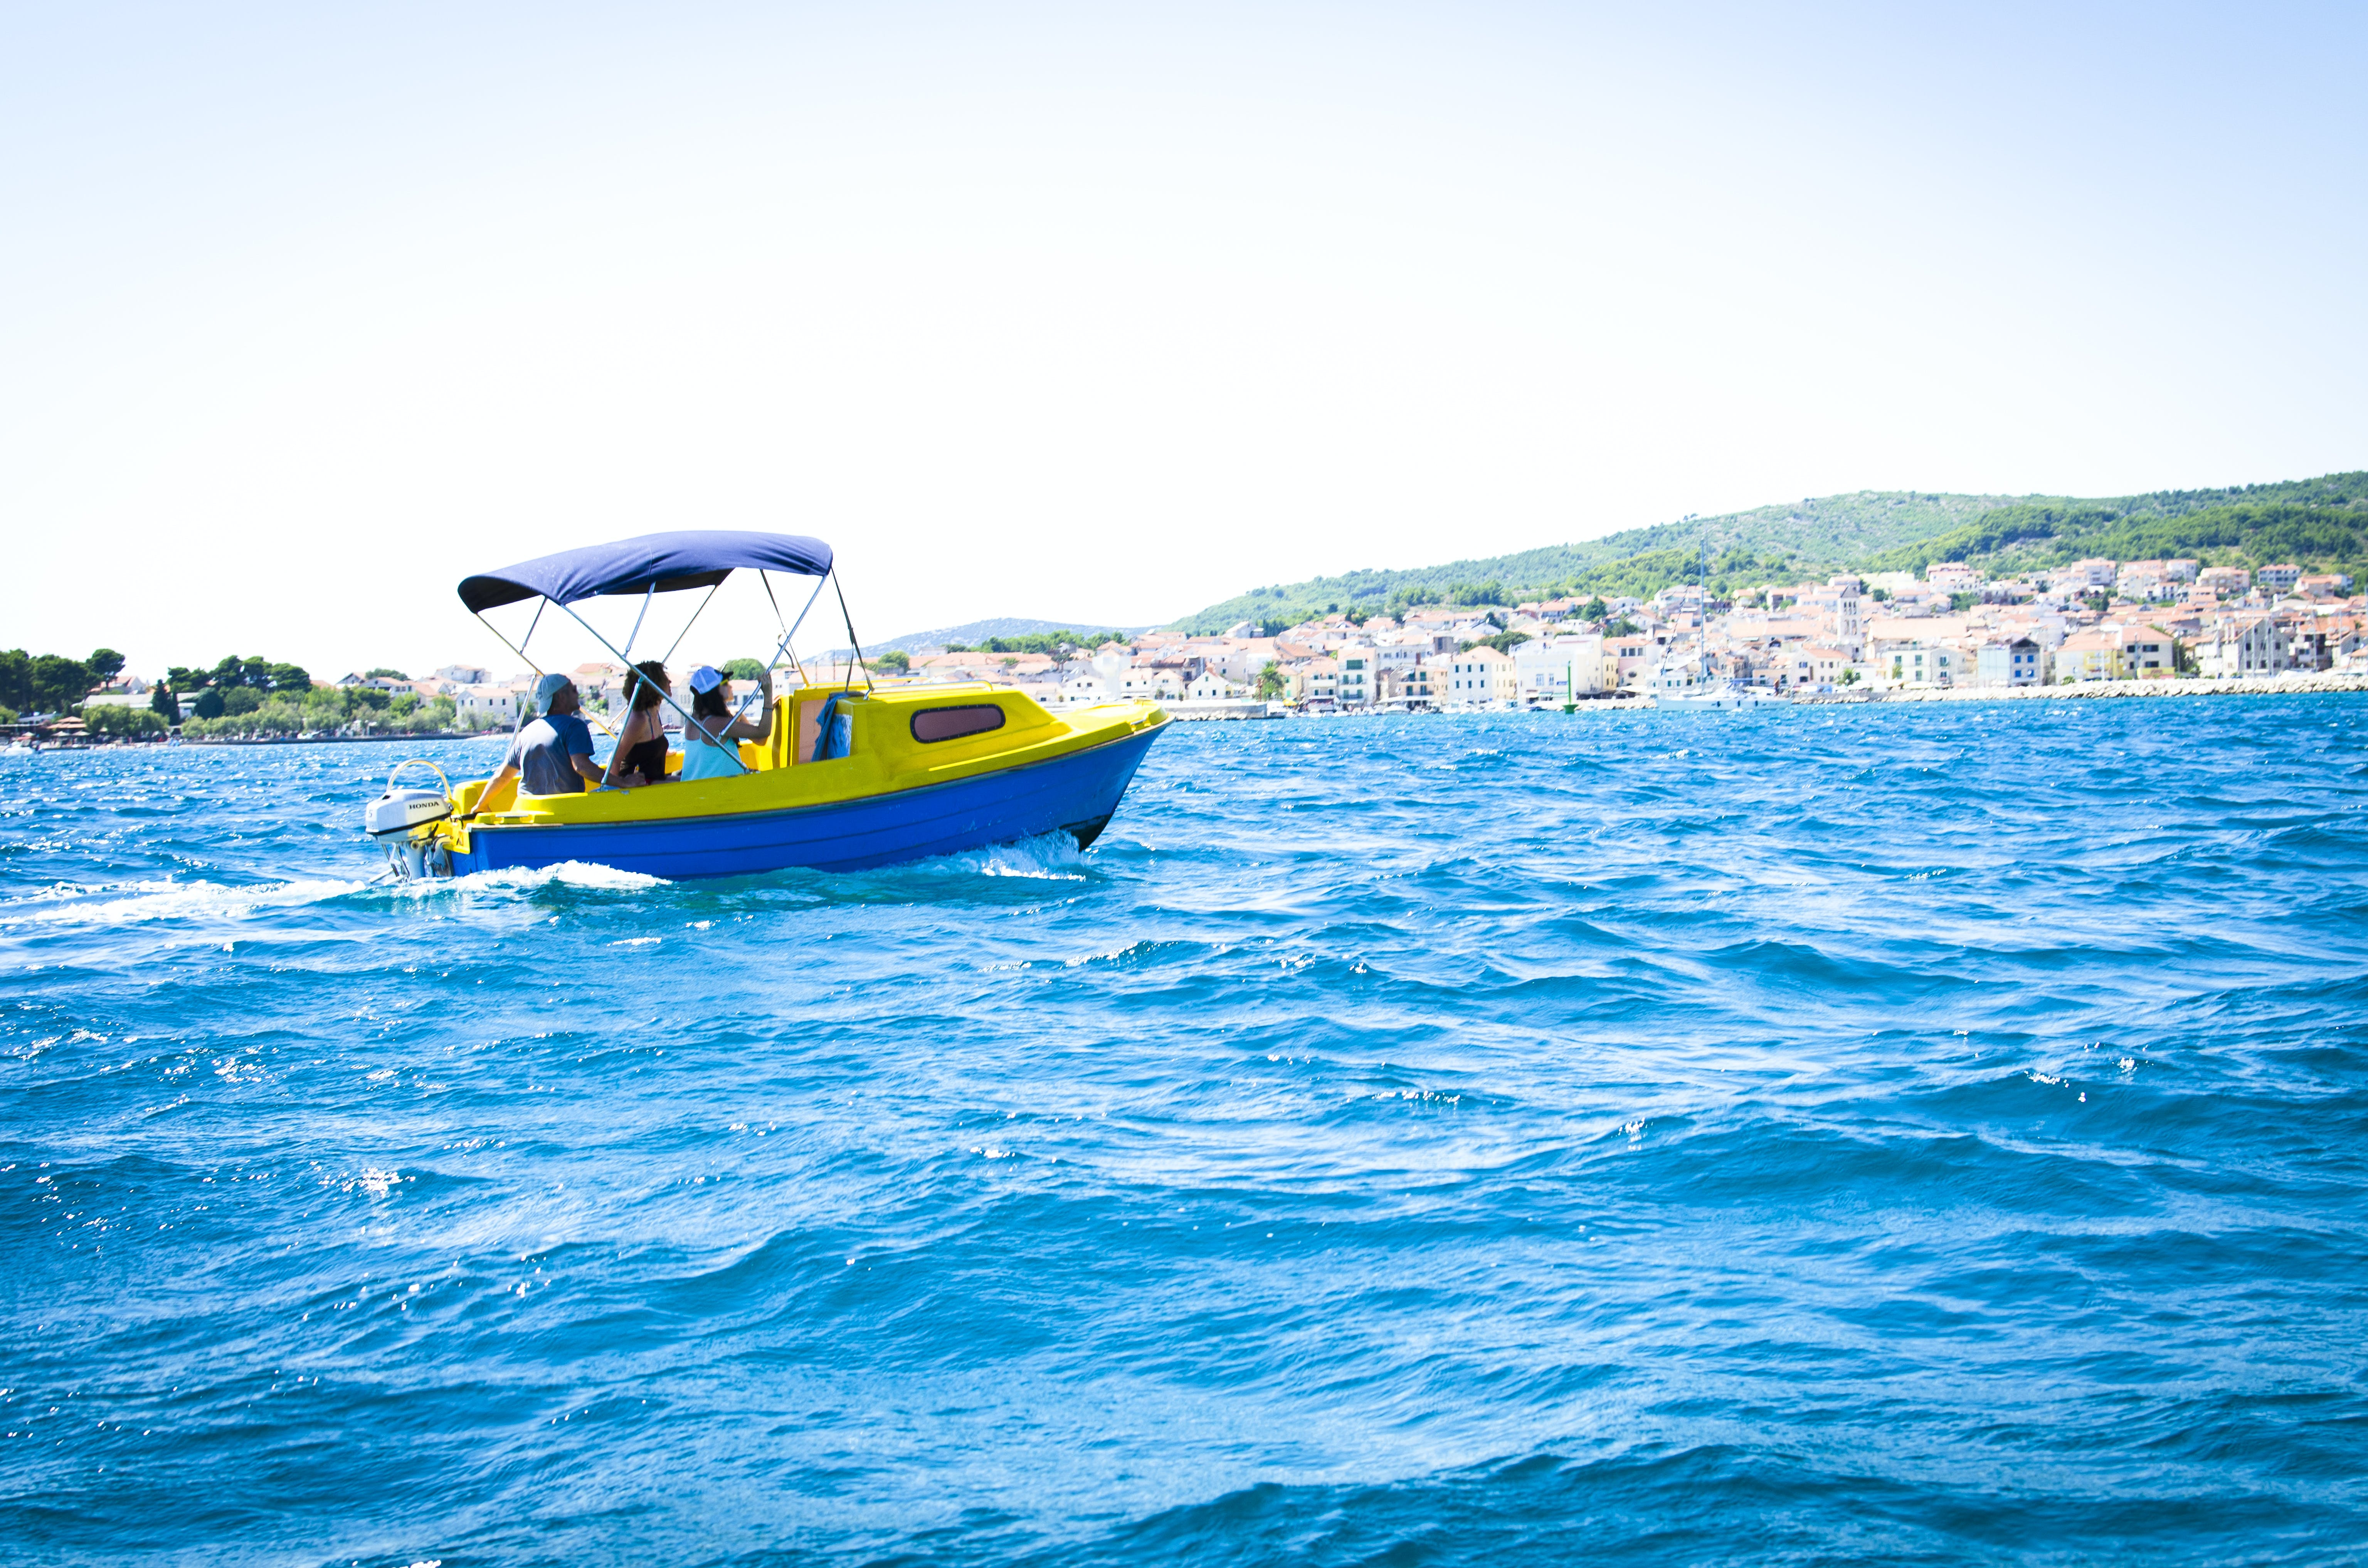 Group of People Riding Bowrider Boat